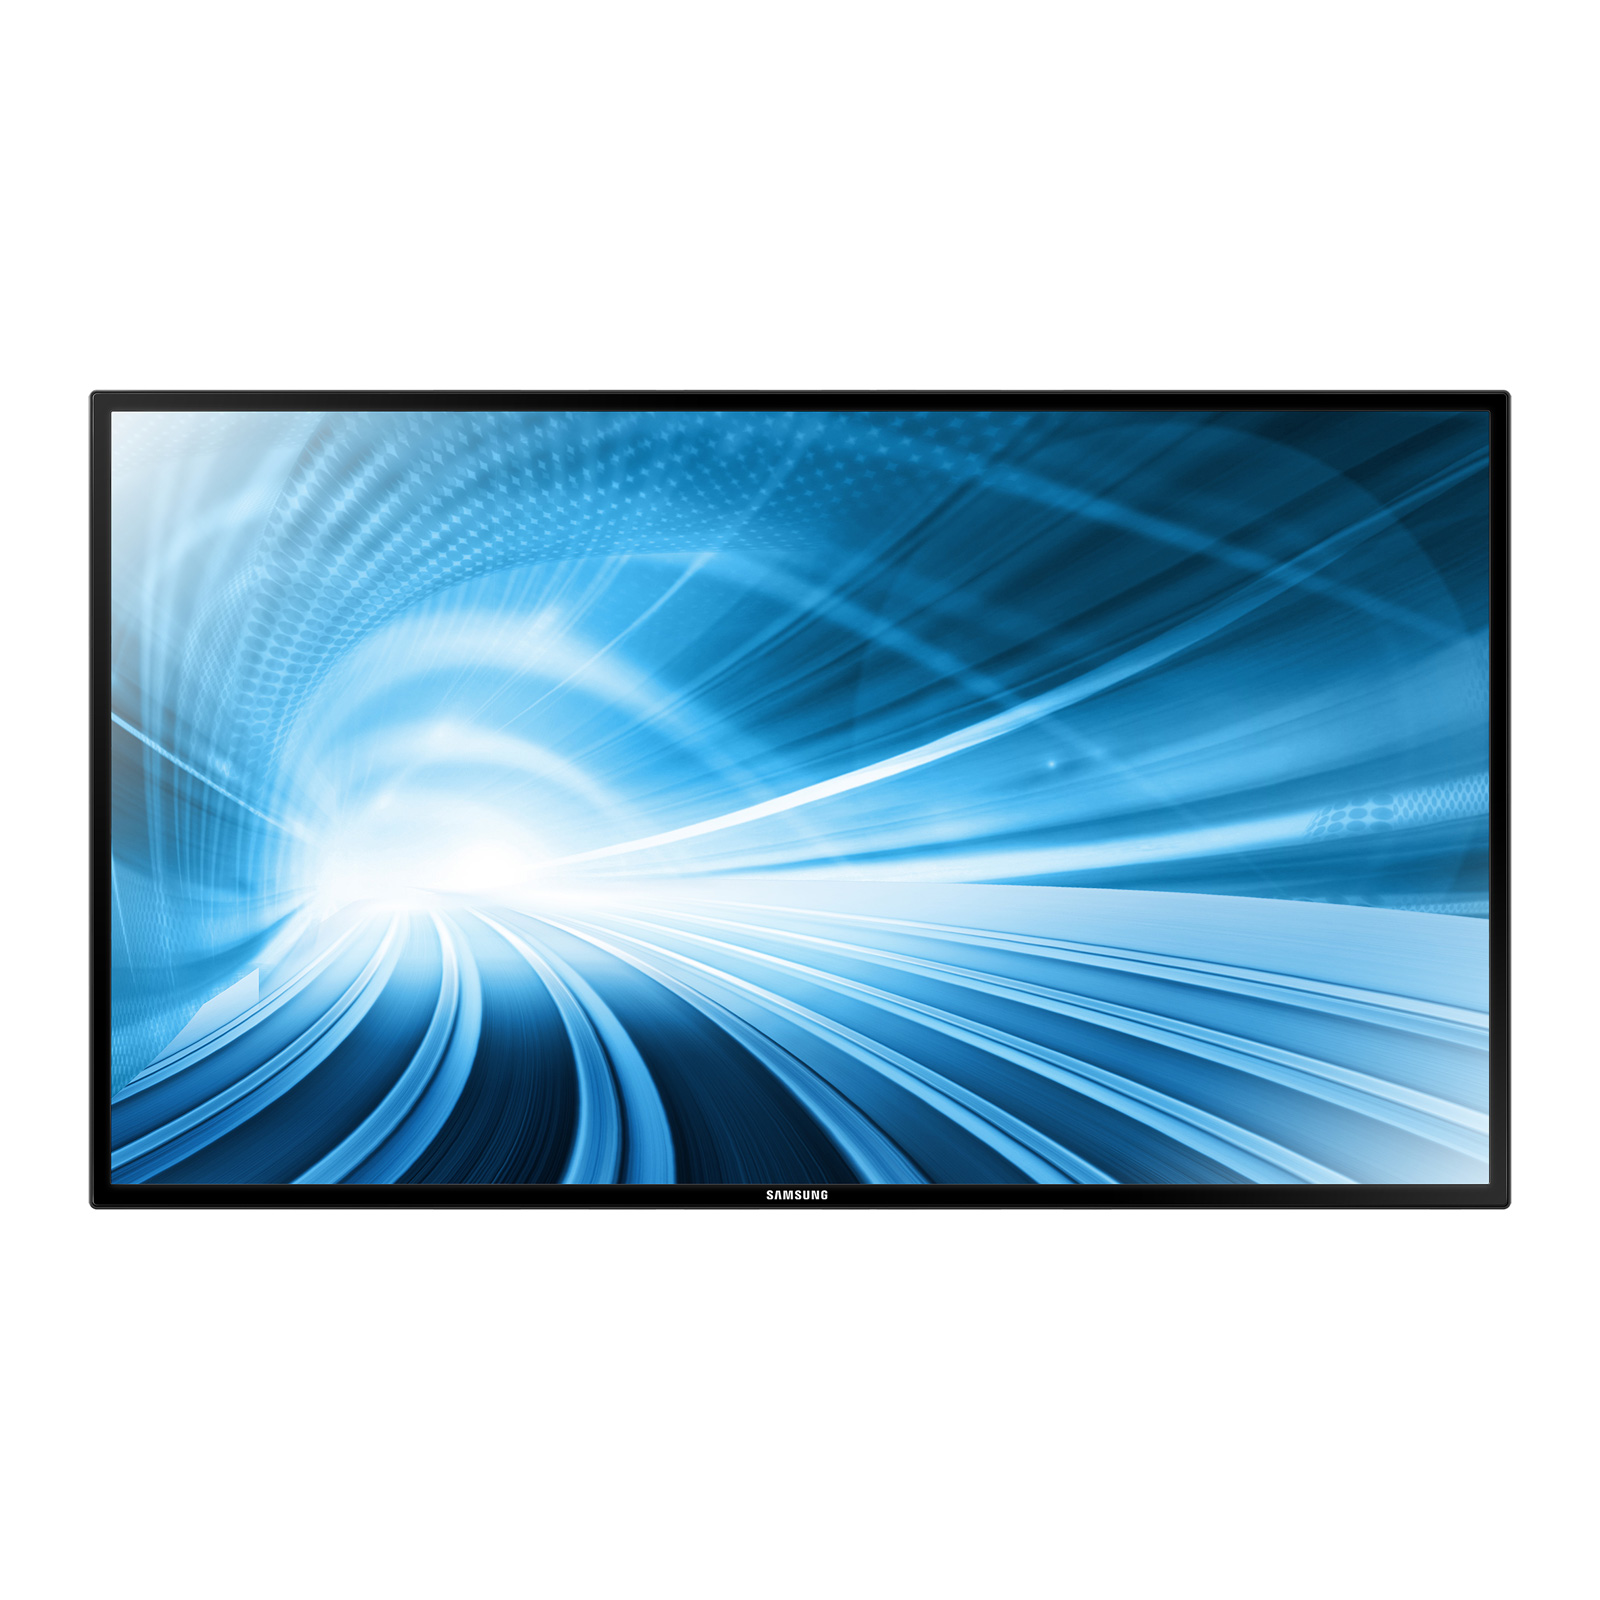 Samsung 55 led ed55d ecran dynamique samsung sur for Samsung photo ecran